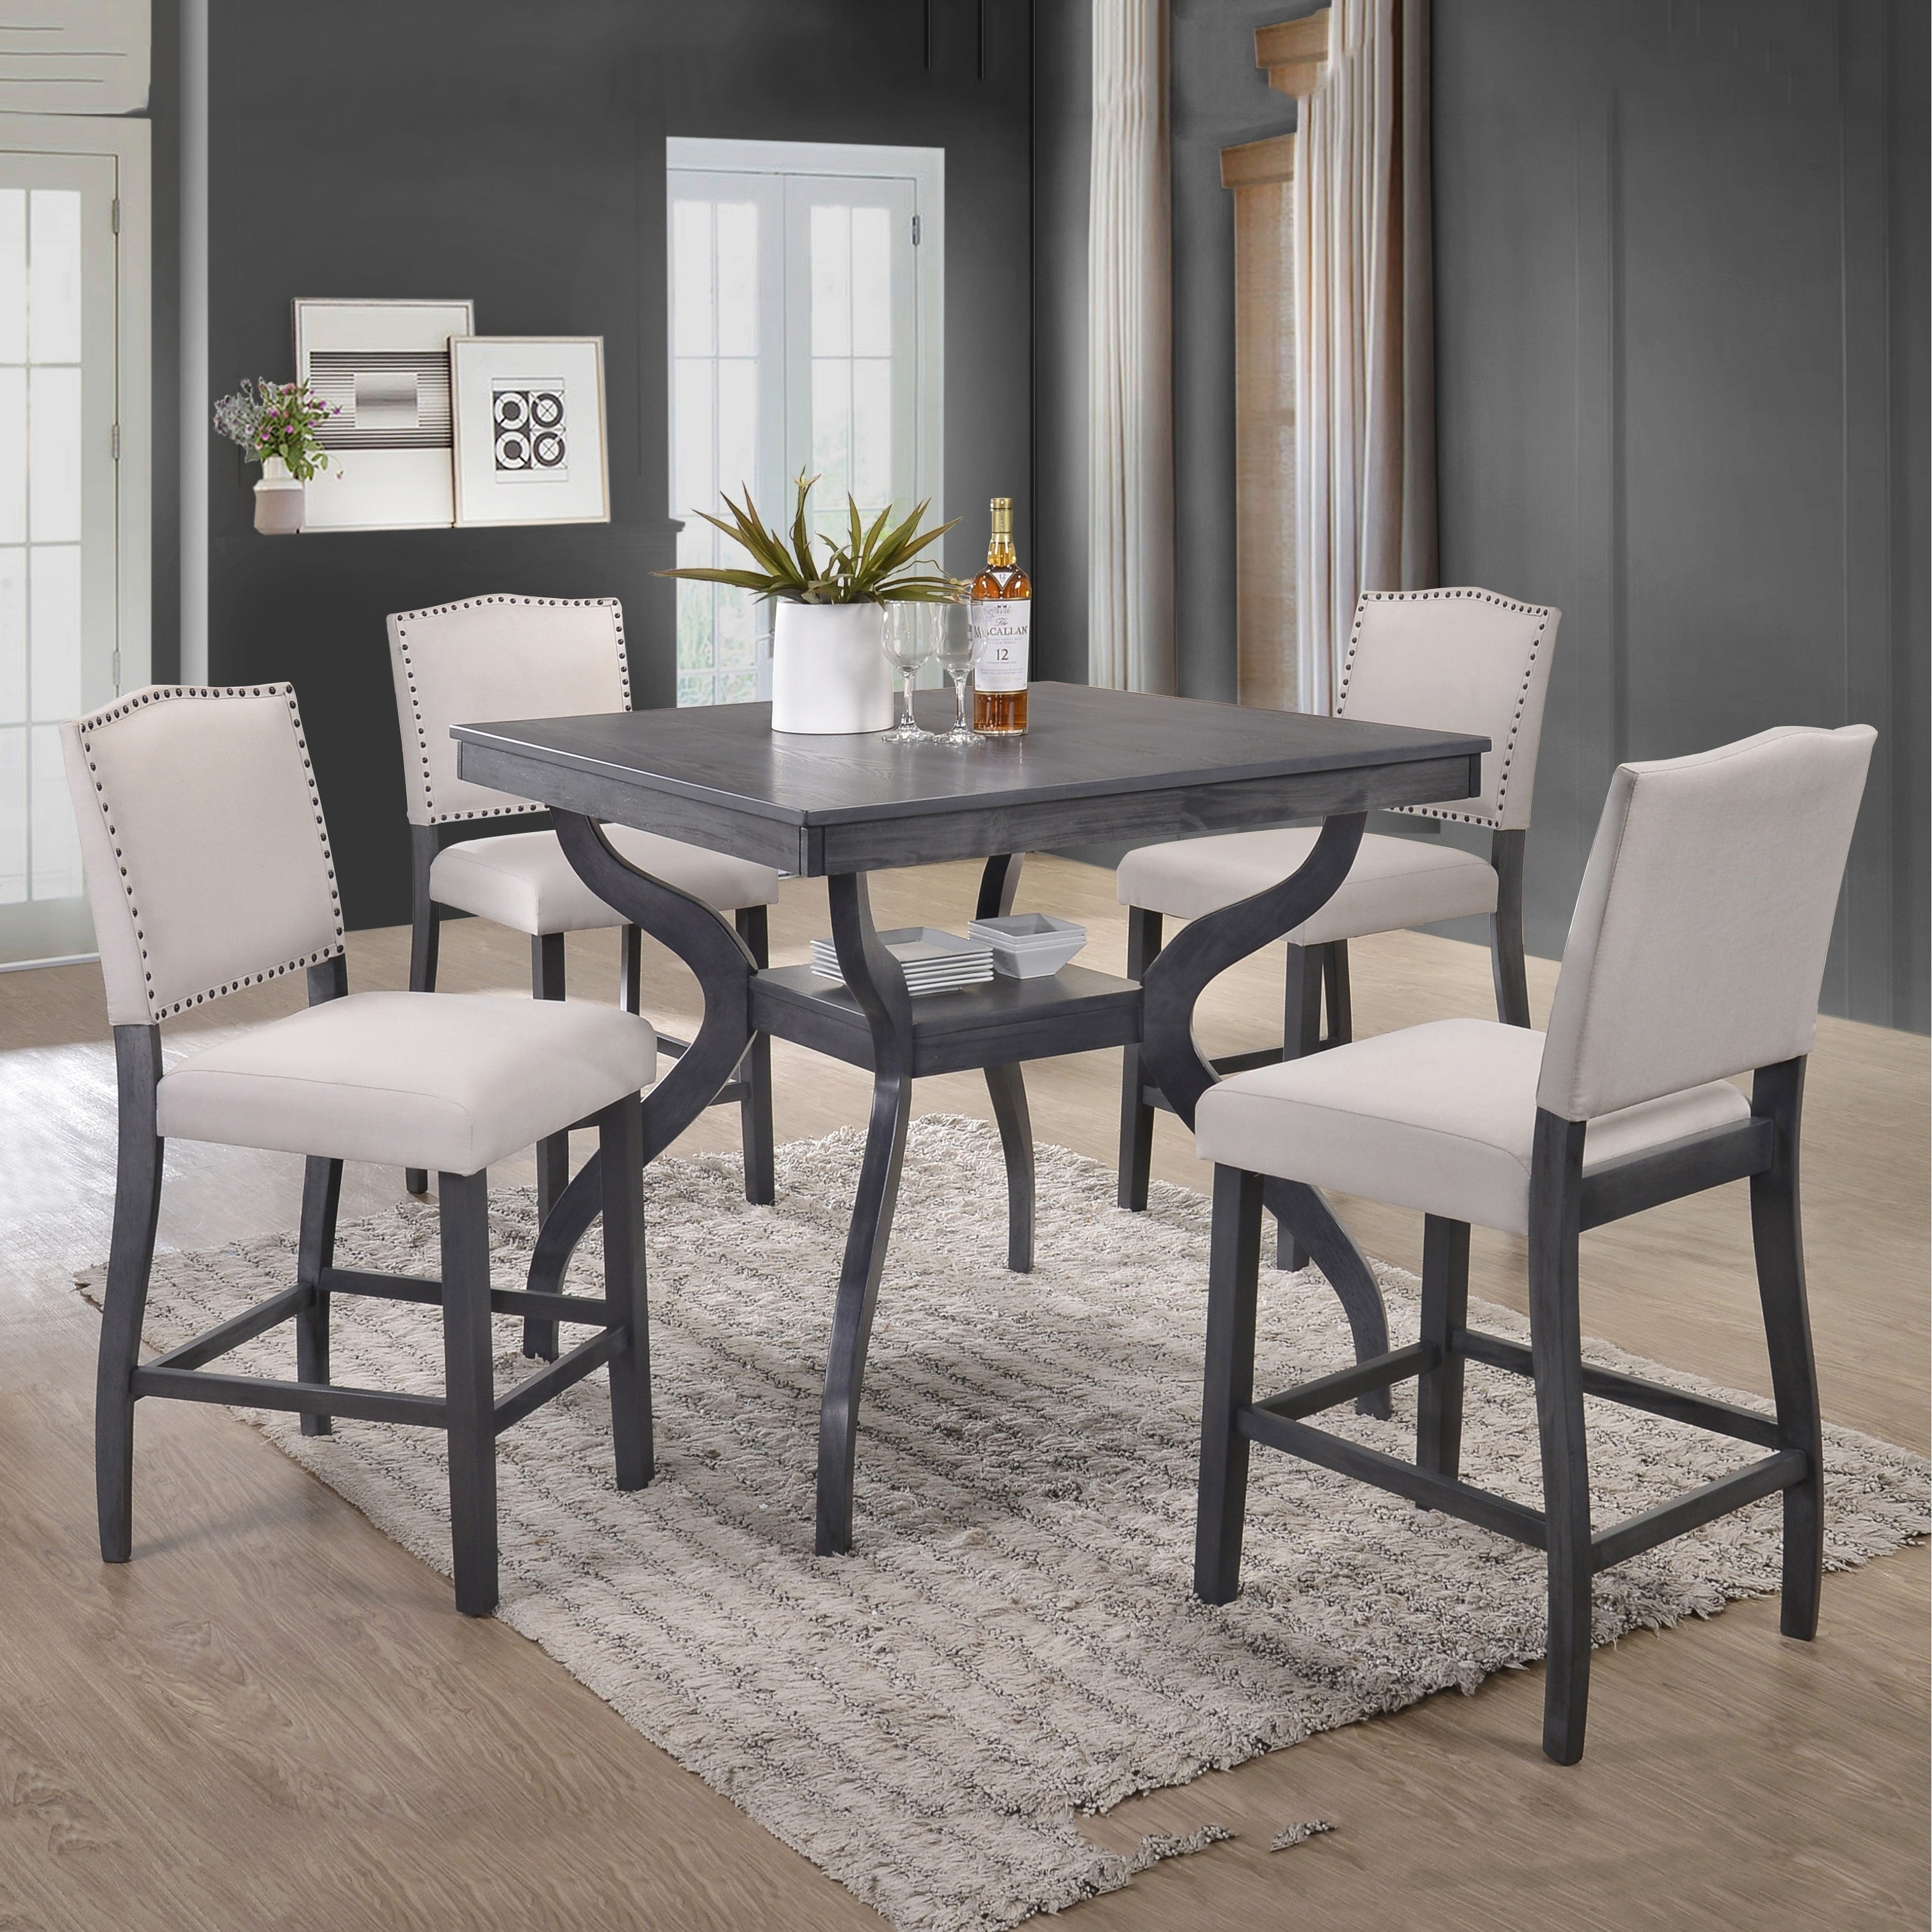 Best Quality Furniture Light Grey 5 Piece Counter Height Dining Set Overstock 18616133